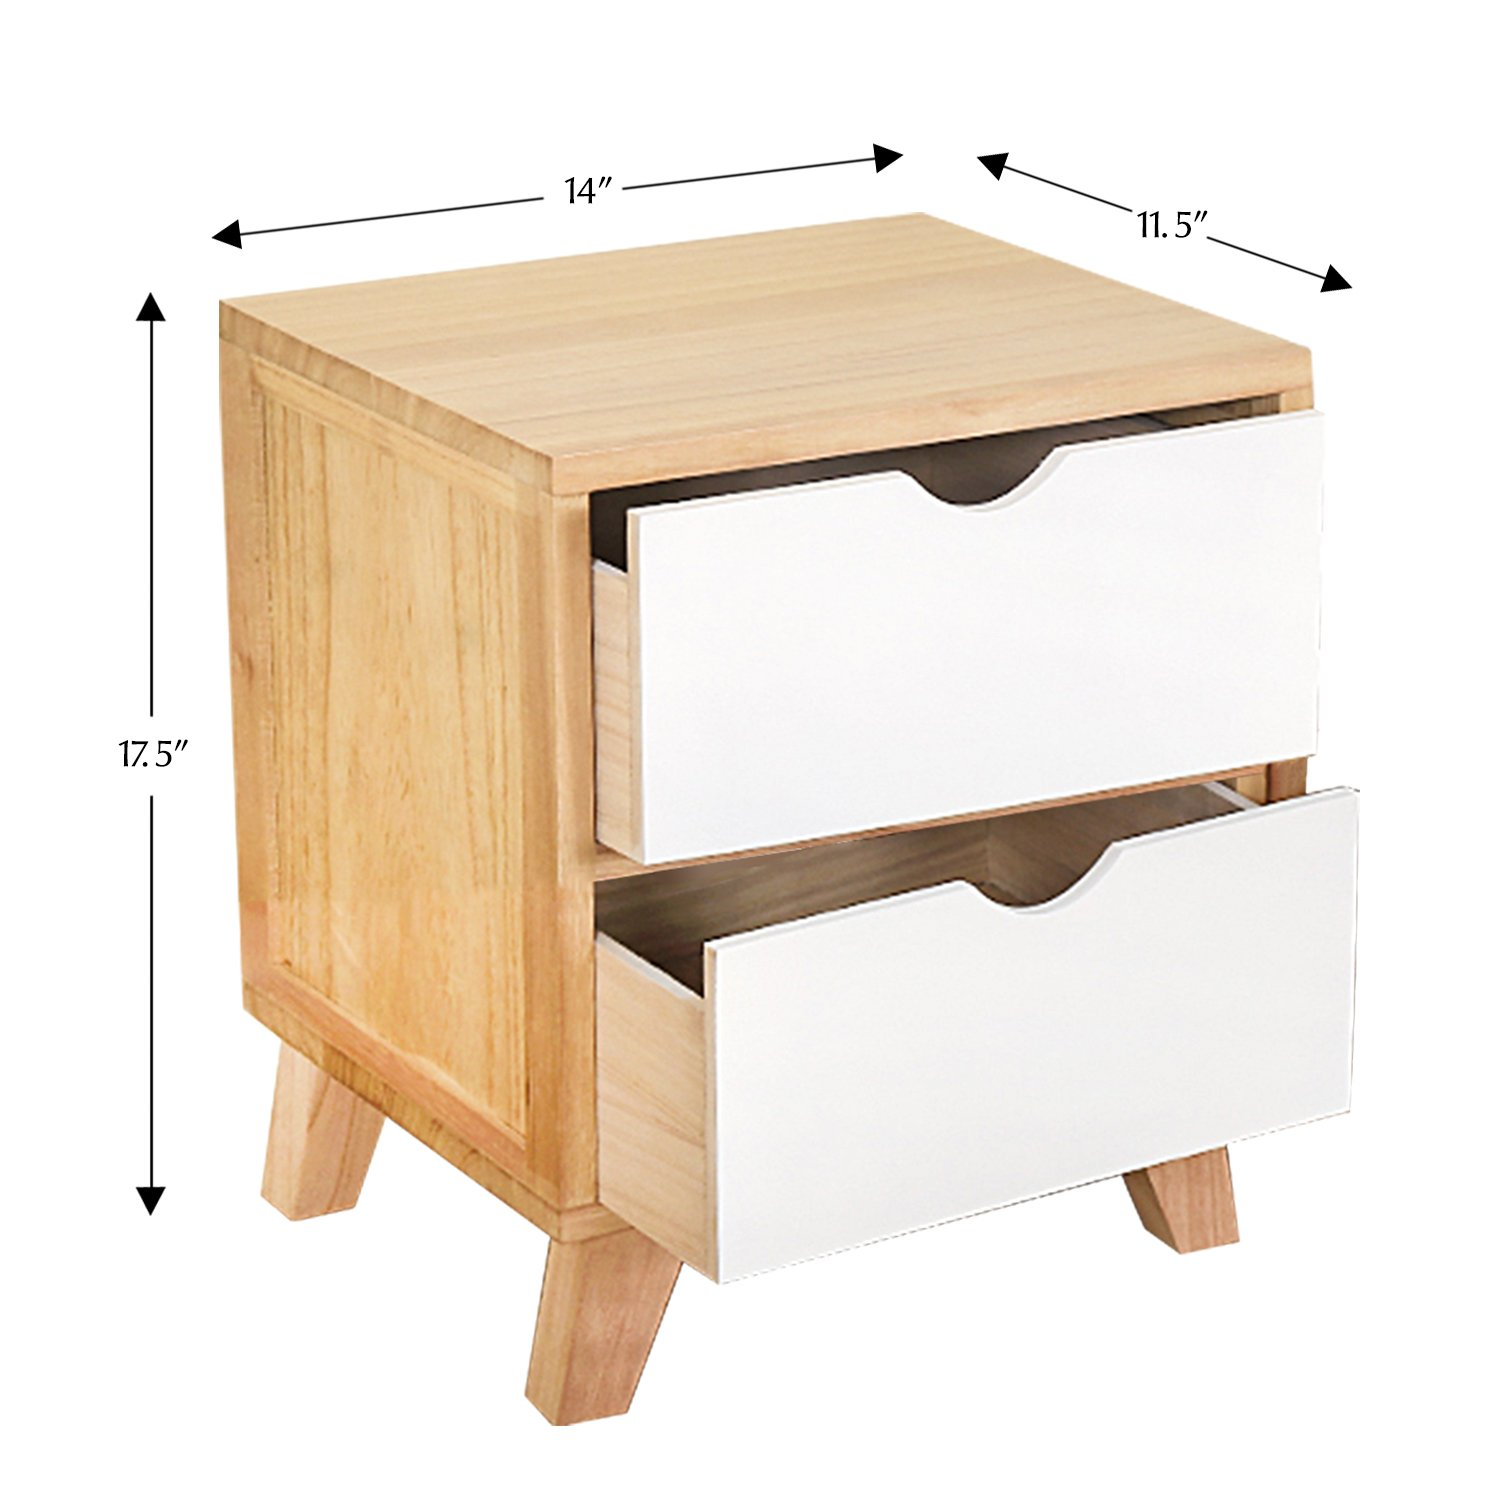 Jerry & Maggie - Nightstand - 2 Tier Curving Pattern Sides Night Stand Storage Bedside Table with 2 Drawer Real Natural Paulownia Wood (2 Tier | Cubric Style)